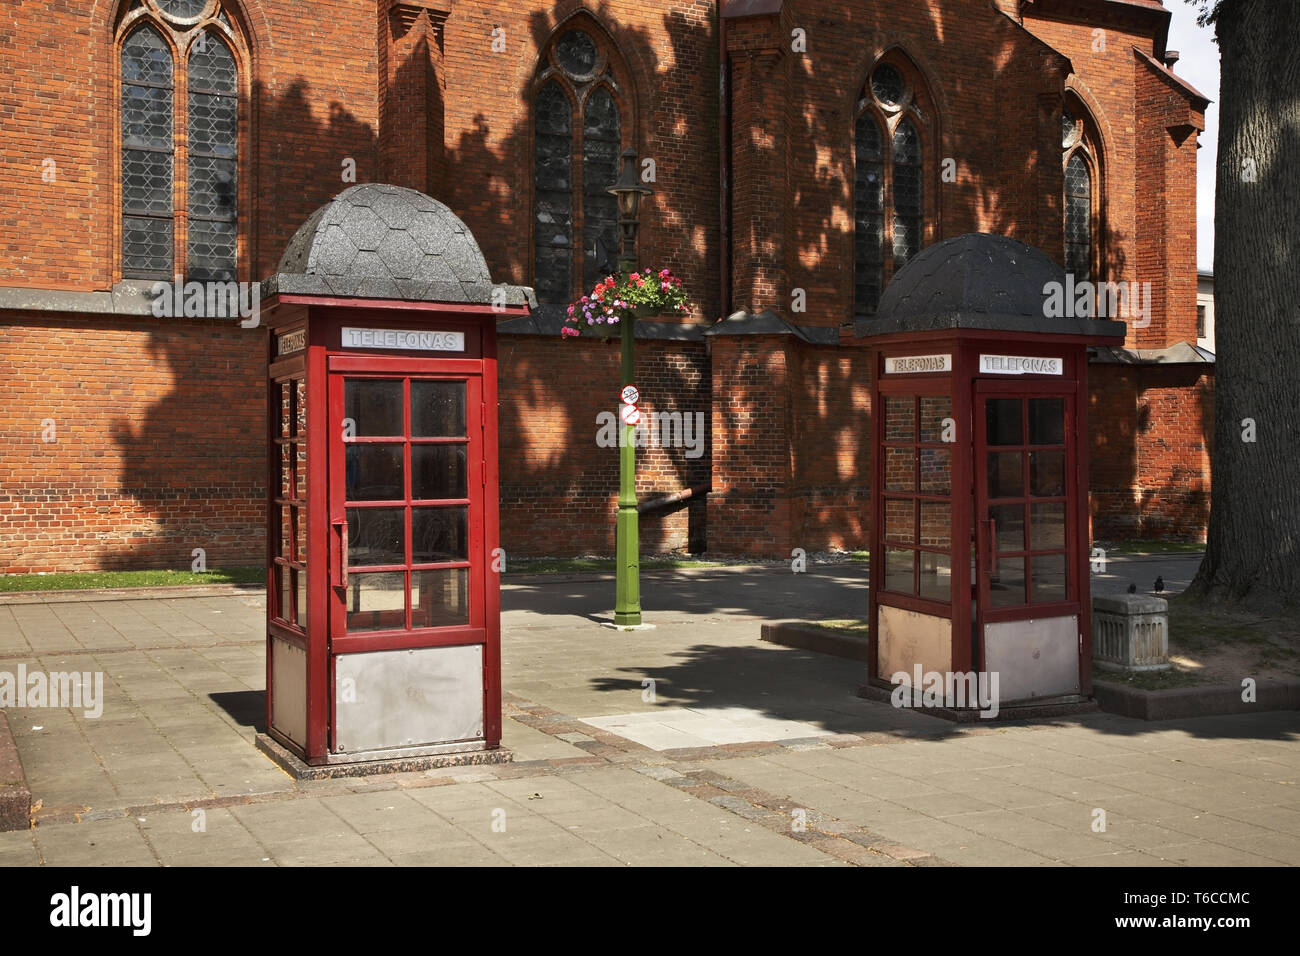 Telephone booth on Vilniaus street in Kaunas. Lithuania - Stock Image